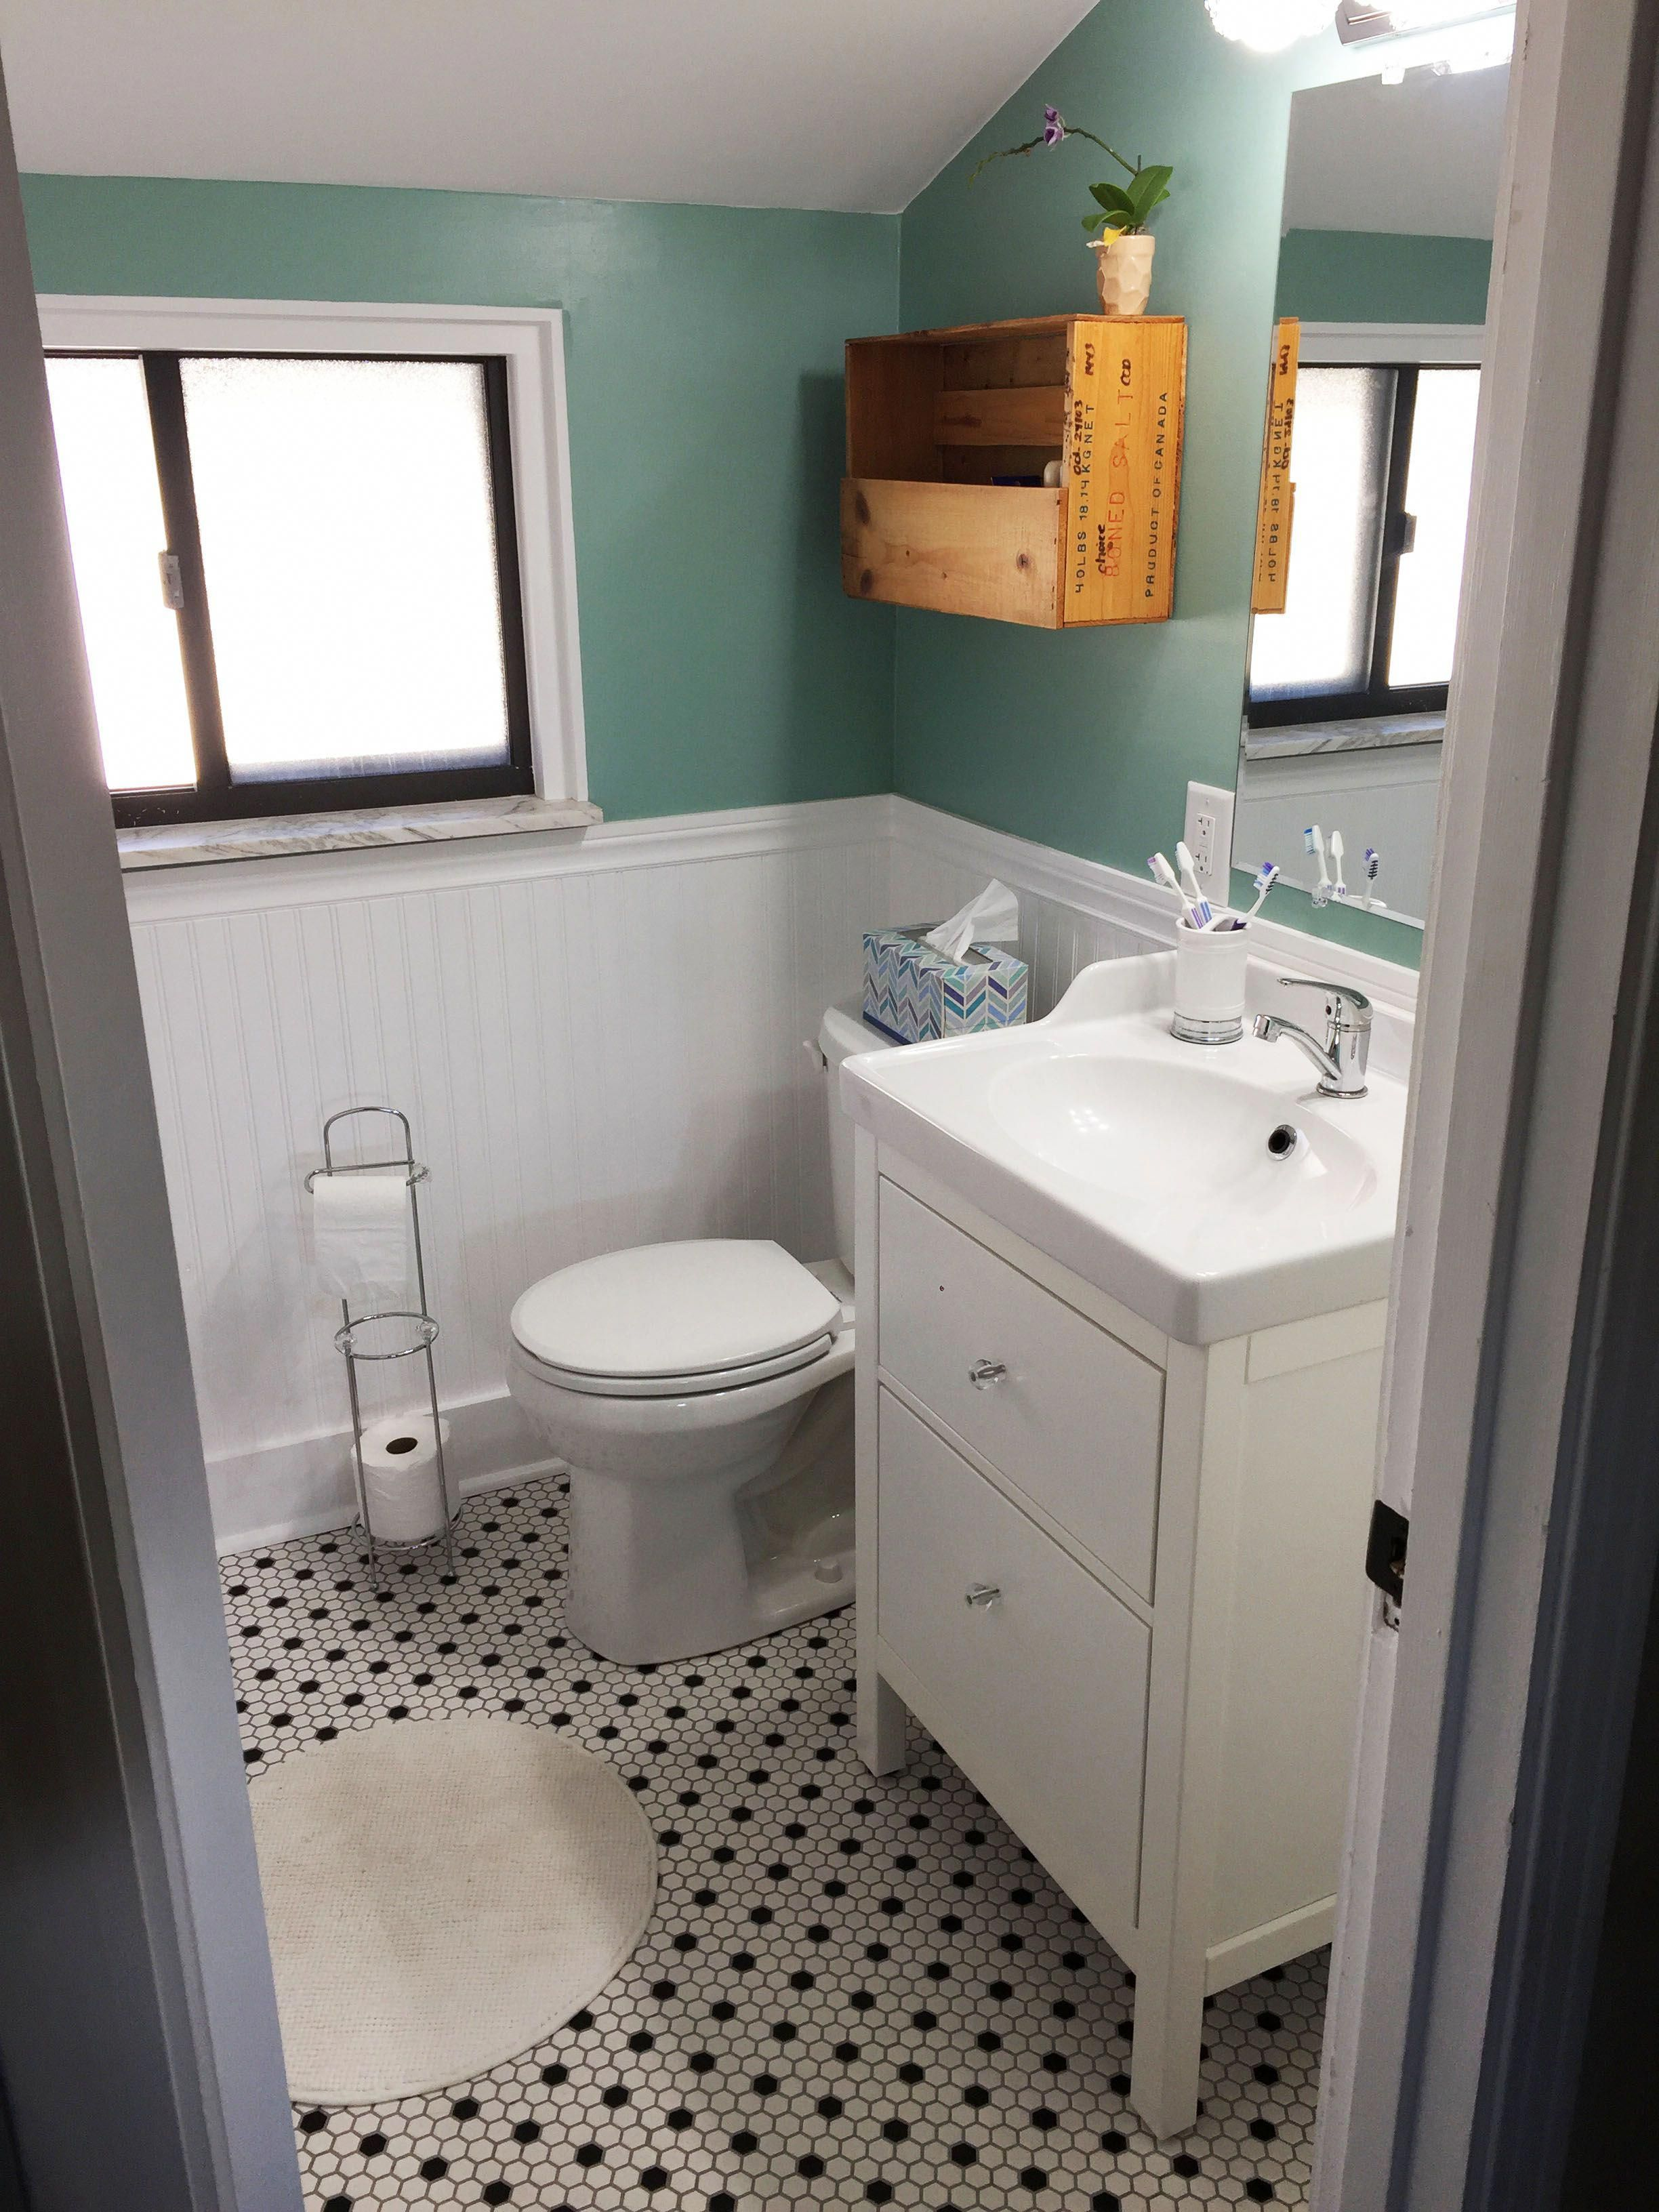 2000 Dollar Bathroom Remodel Before And After Before After Bathroom Renovation Diy Bathroom Reno Diy Bathroom Bathroom Redo Interior Bathroom